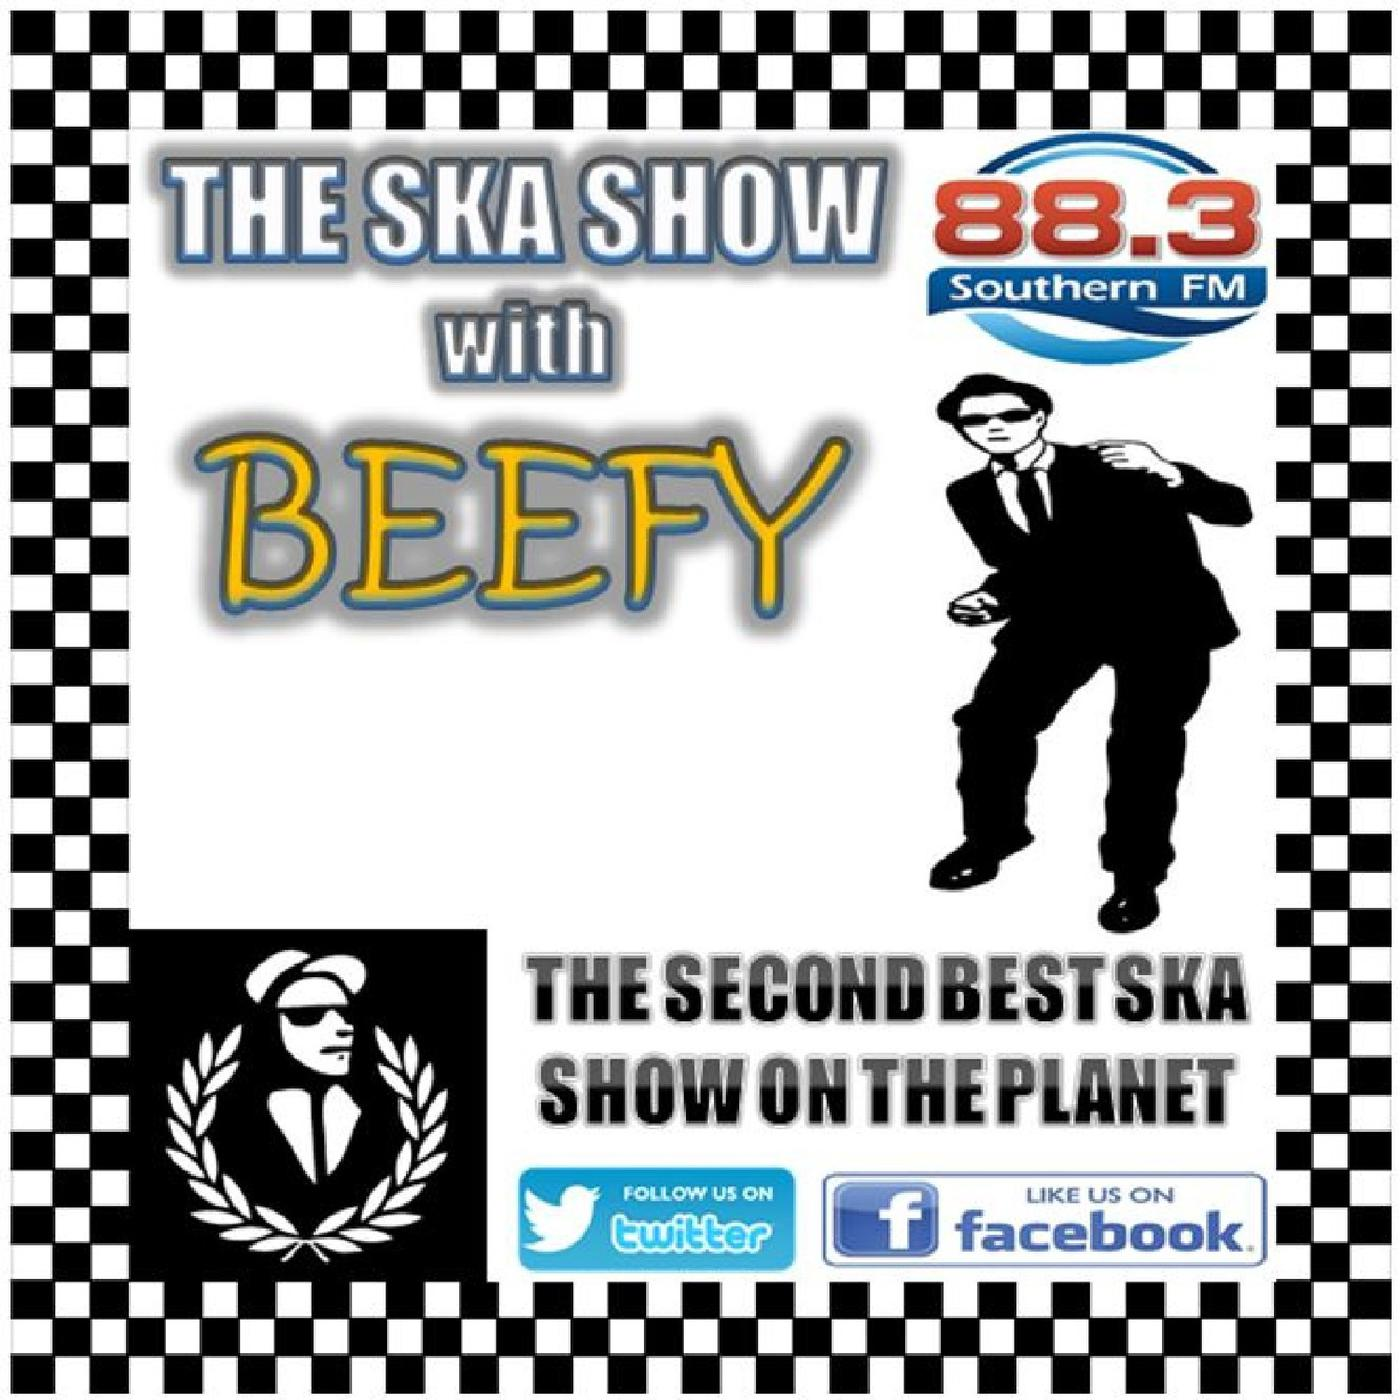 The Ska Show with Beefy, 2018 Christmas Special